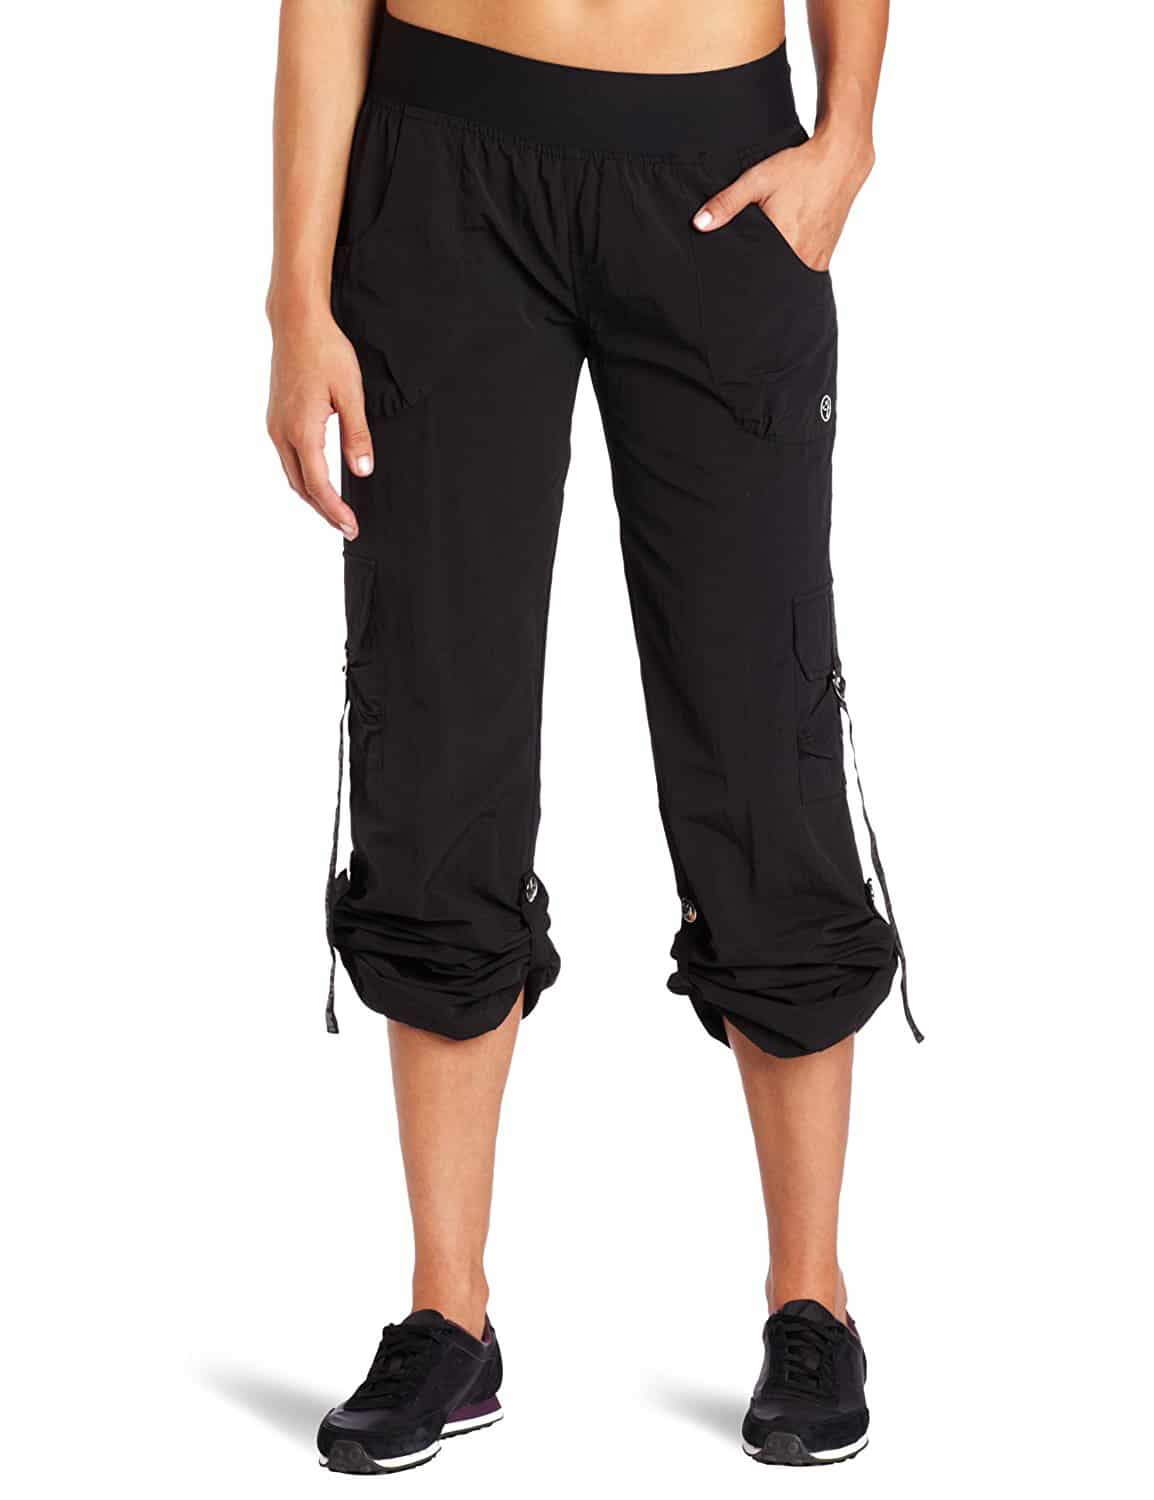 Click on the image to check out the Zumba Feelin' It Samba Pants on Amazon.